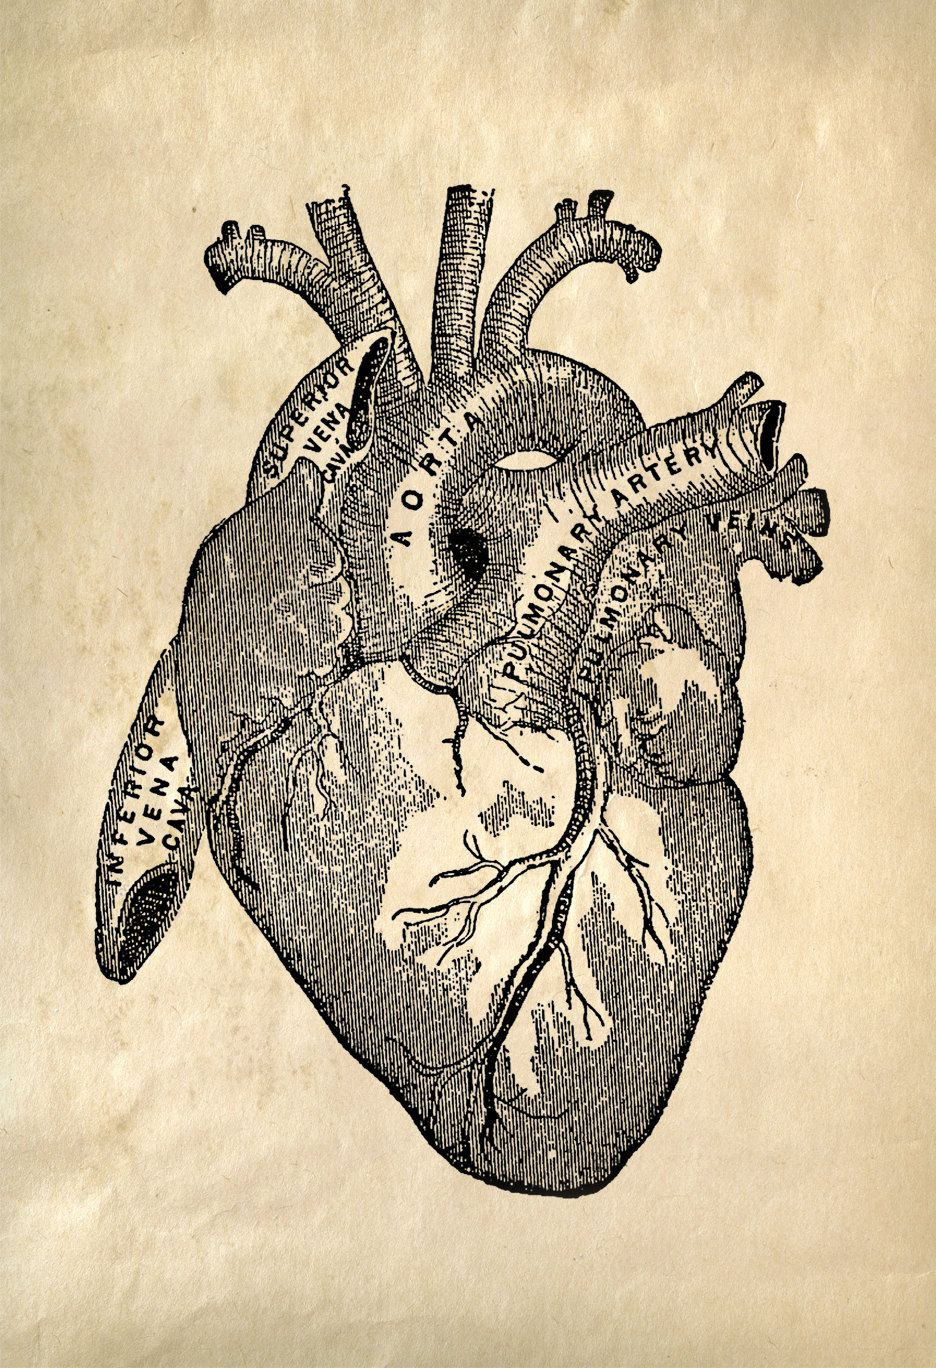 8x10 vintage anatomy print heart 708cv by curiousprints on etsy